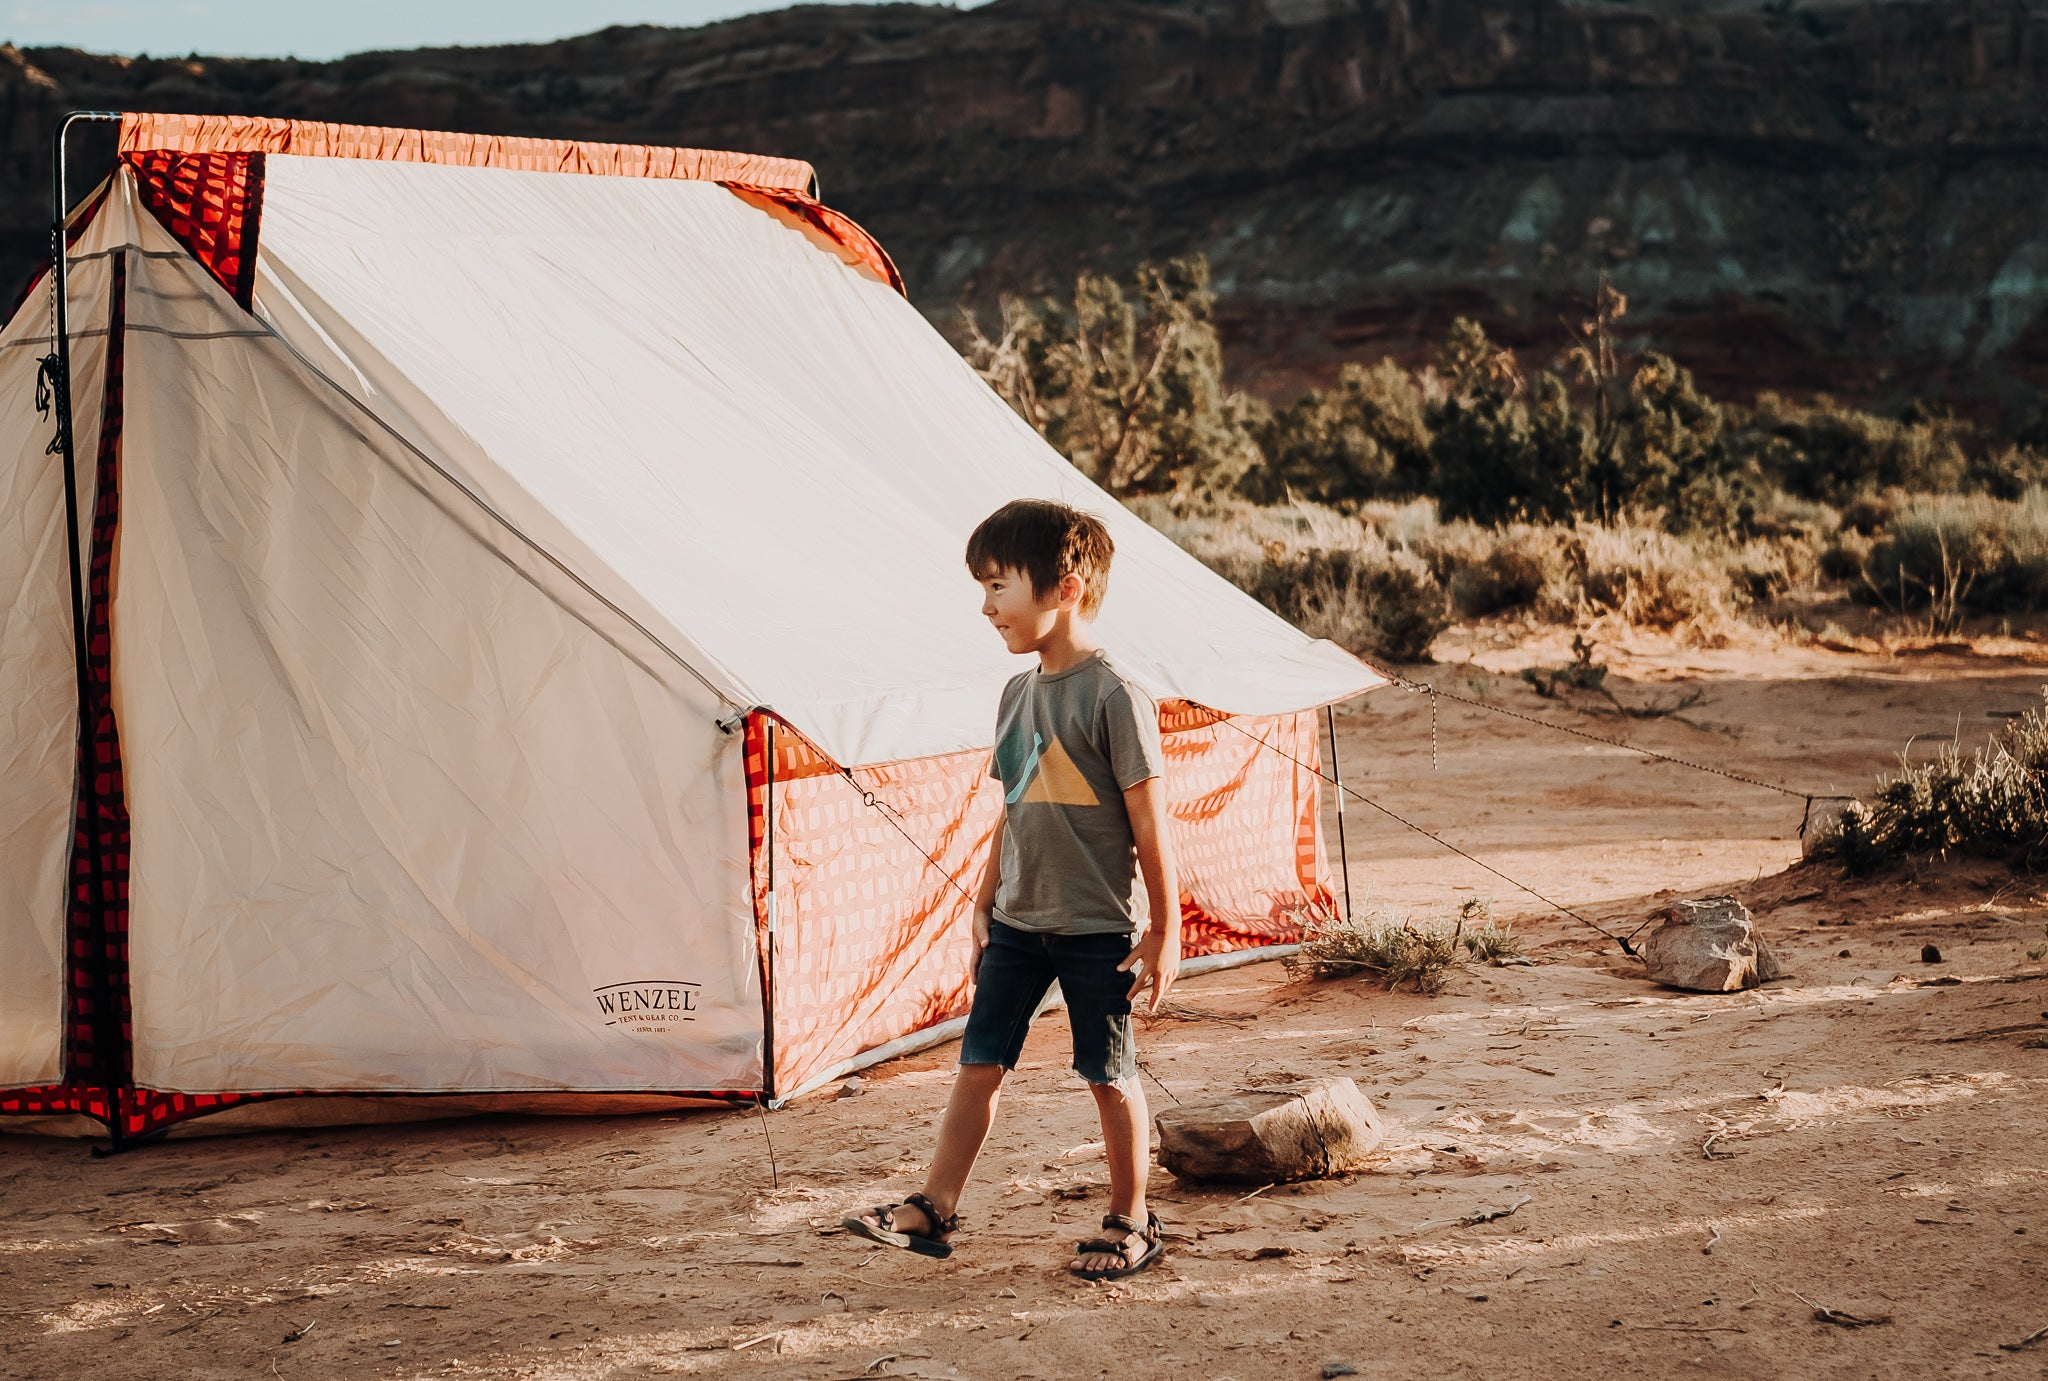 Kid standing next to a tent in the desert